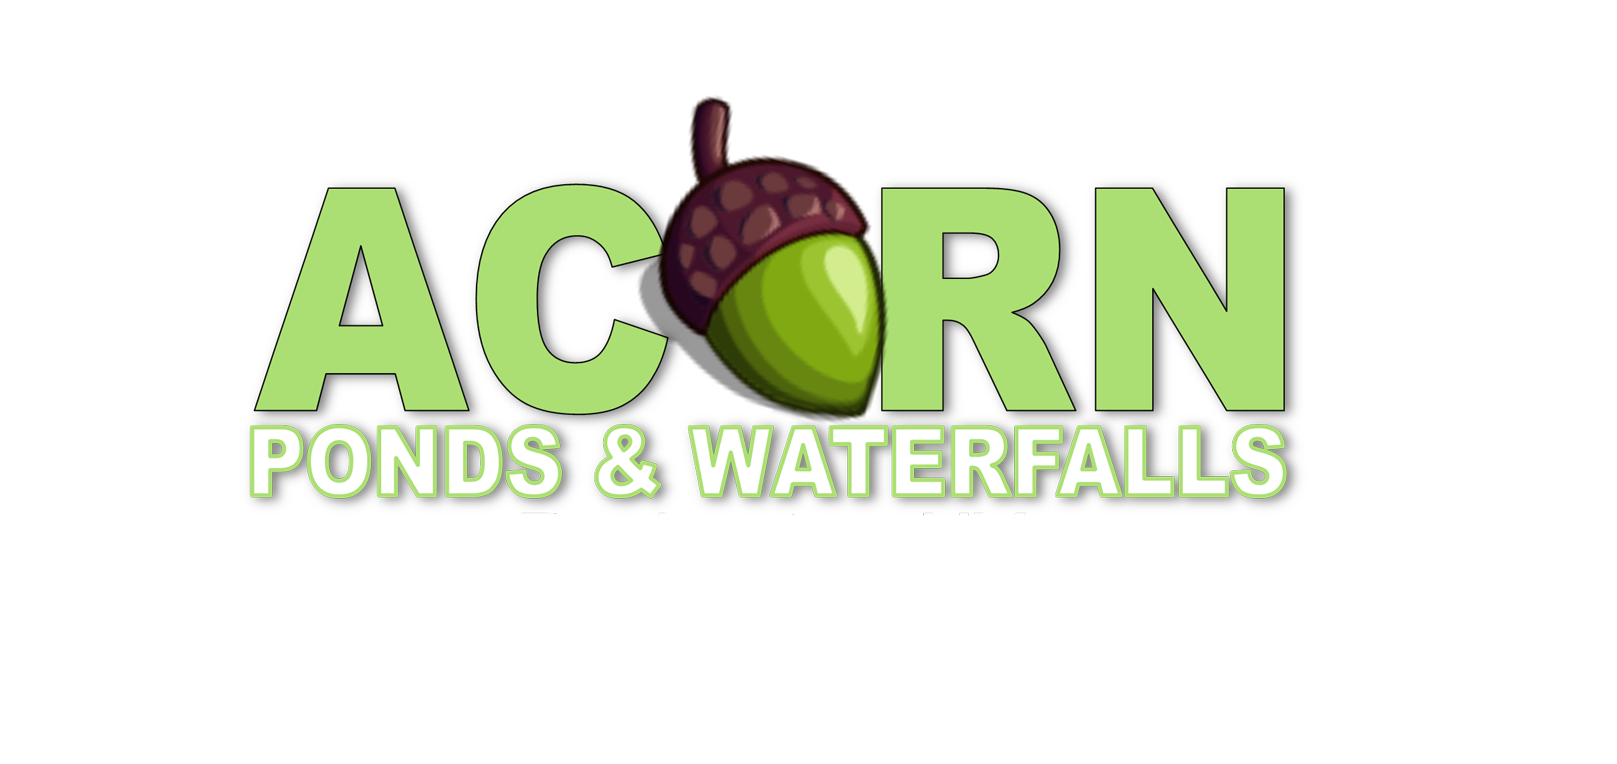 Waterfall Pond Builder, Repair & Renovation Contractor Rochester NY - Acorn Ponds & Waterfalls